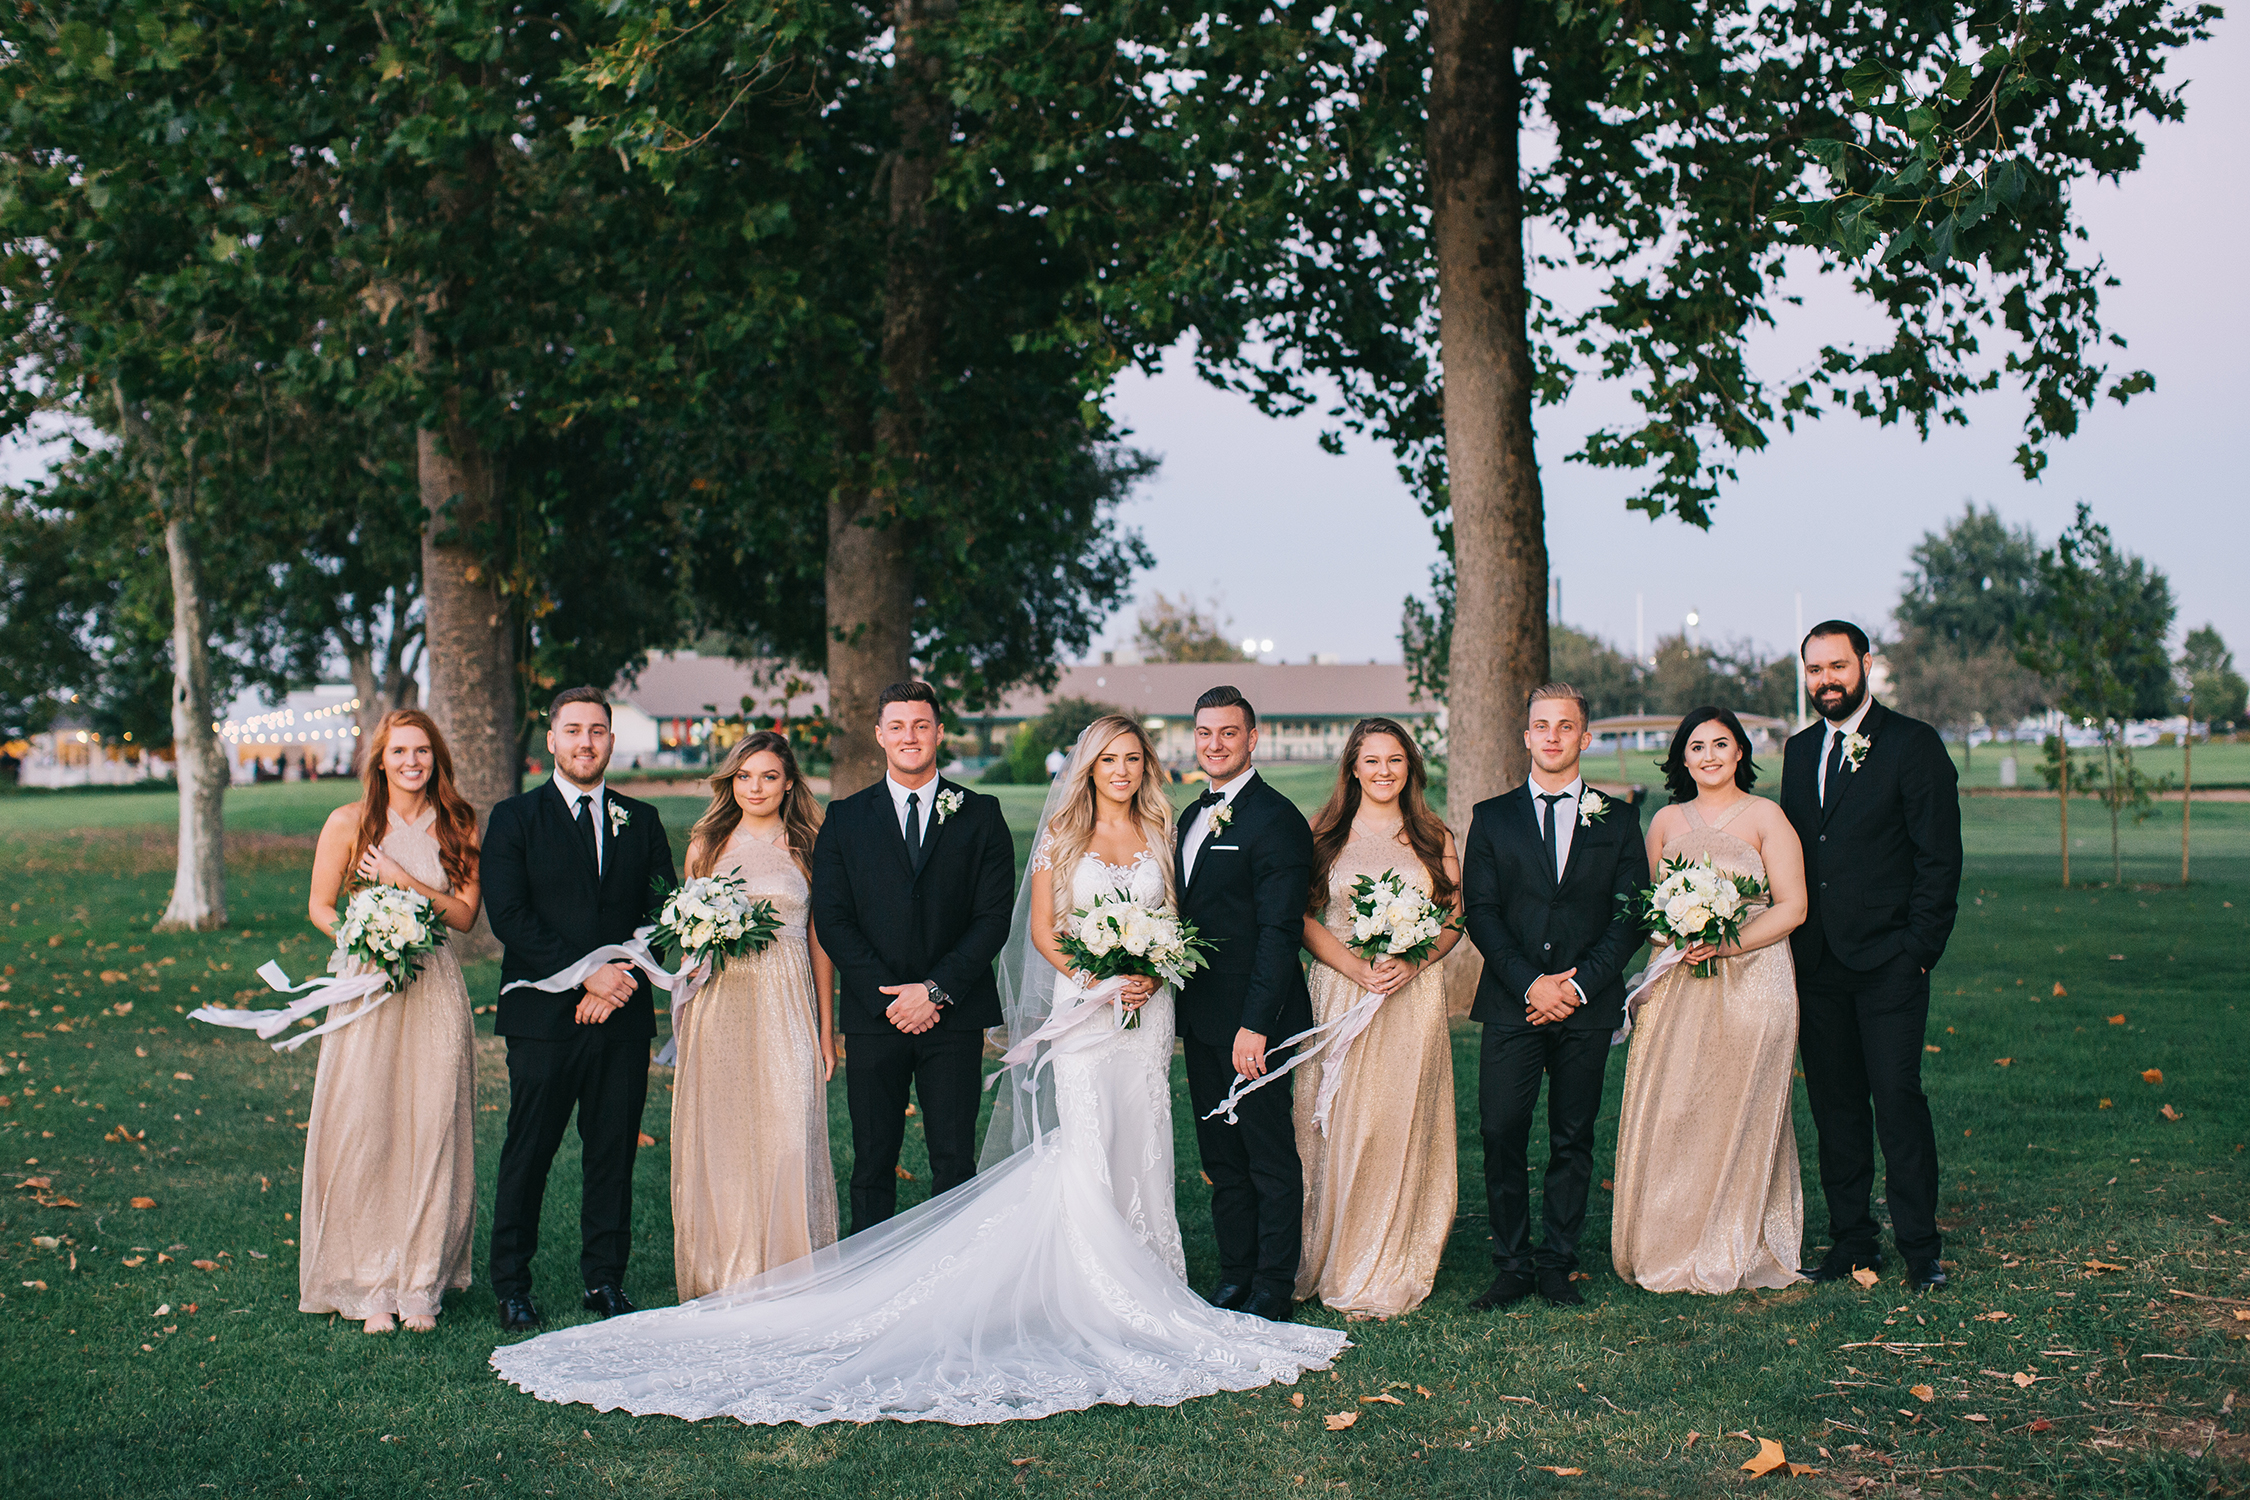 bridal_party_black_suits_champagne_gold_dresses_long_veil_golf_wedding_white_upscale_luxury_ddecor_san_fransisco_napa_violette_fleurs_anna_perevertaylo.jpg